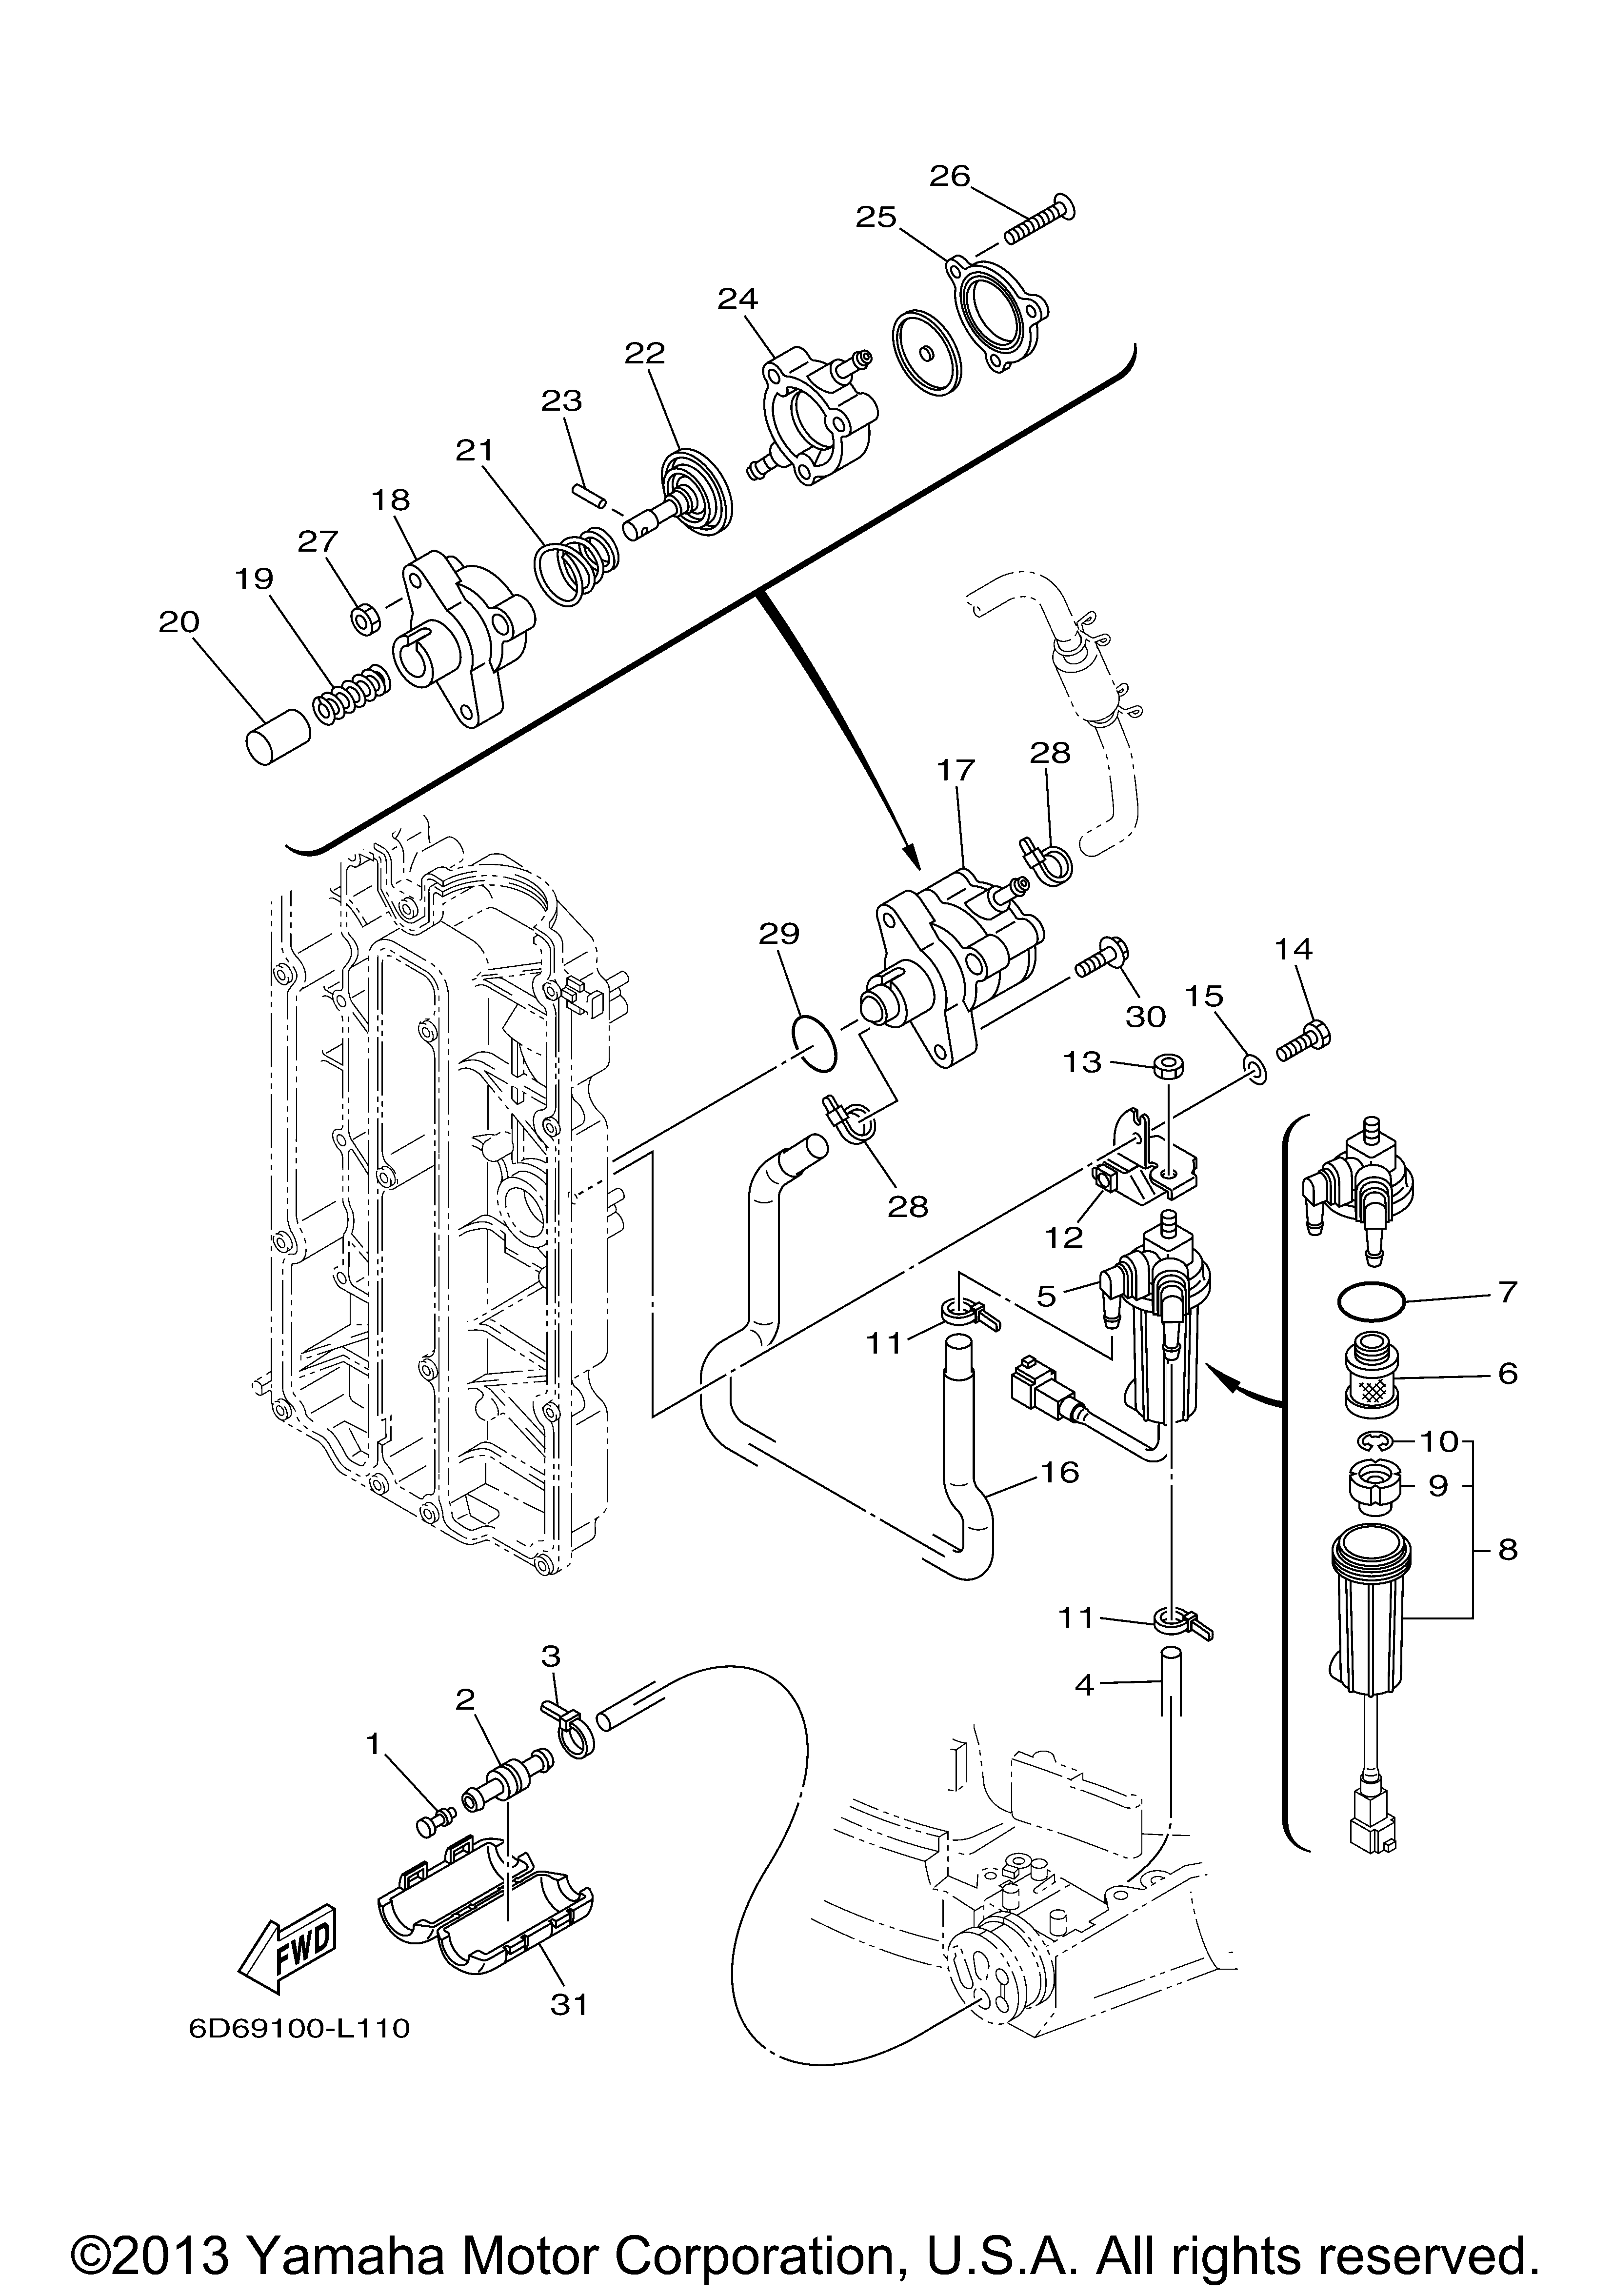 Wiring Diagram 8 Mercury Outboard Wiring Diagram Ignition